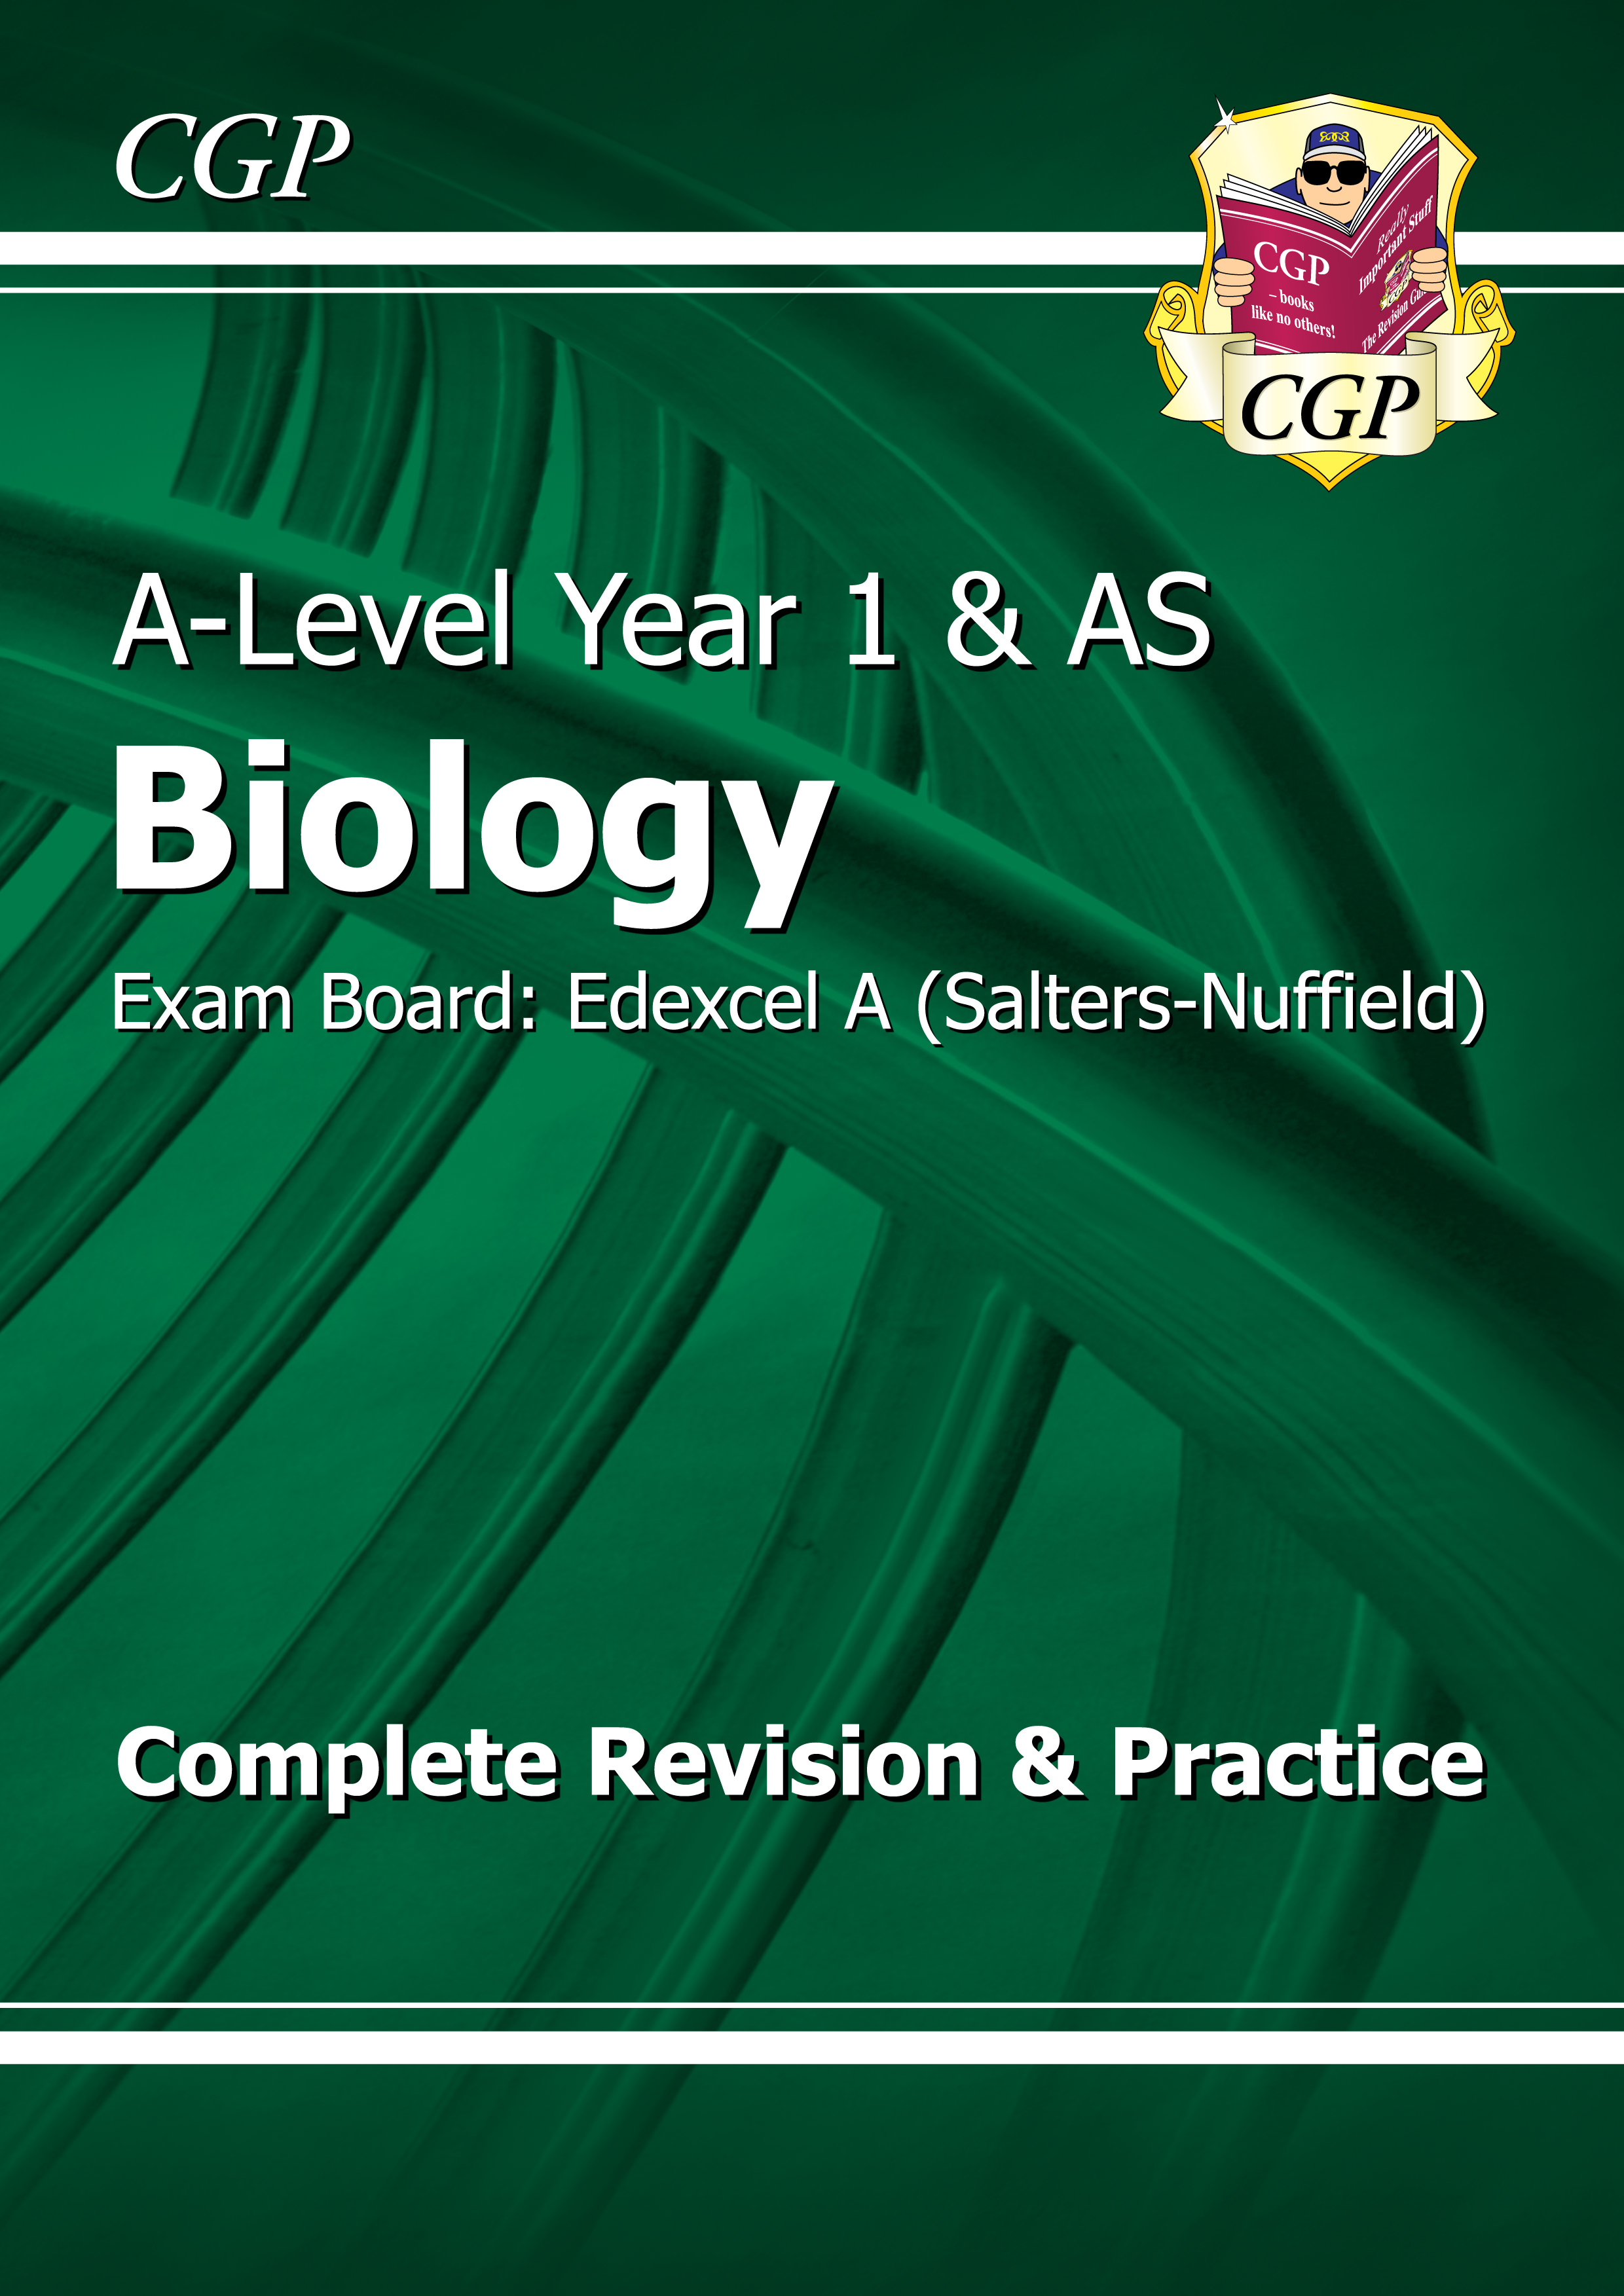 BEAR54DK - A-Level Biology: Edexcel A Year 1 & AS Complete Revision & Practice